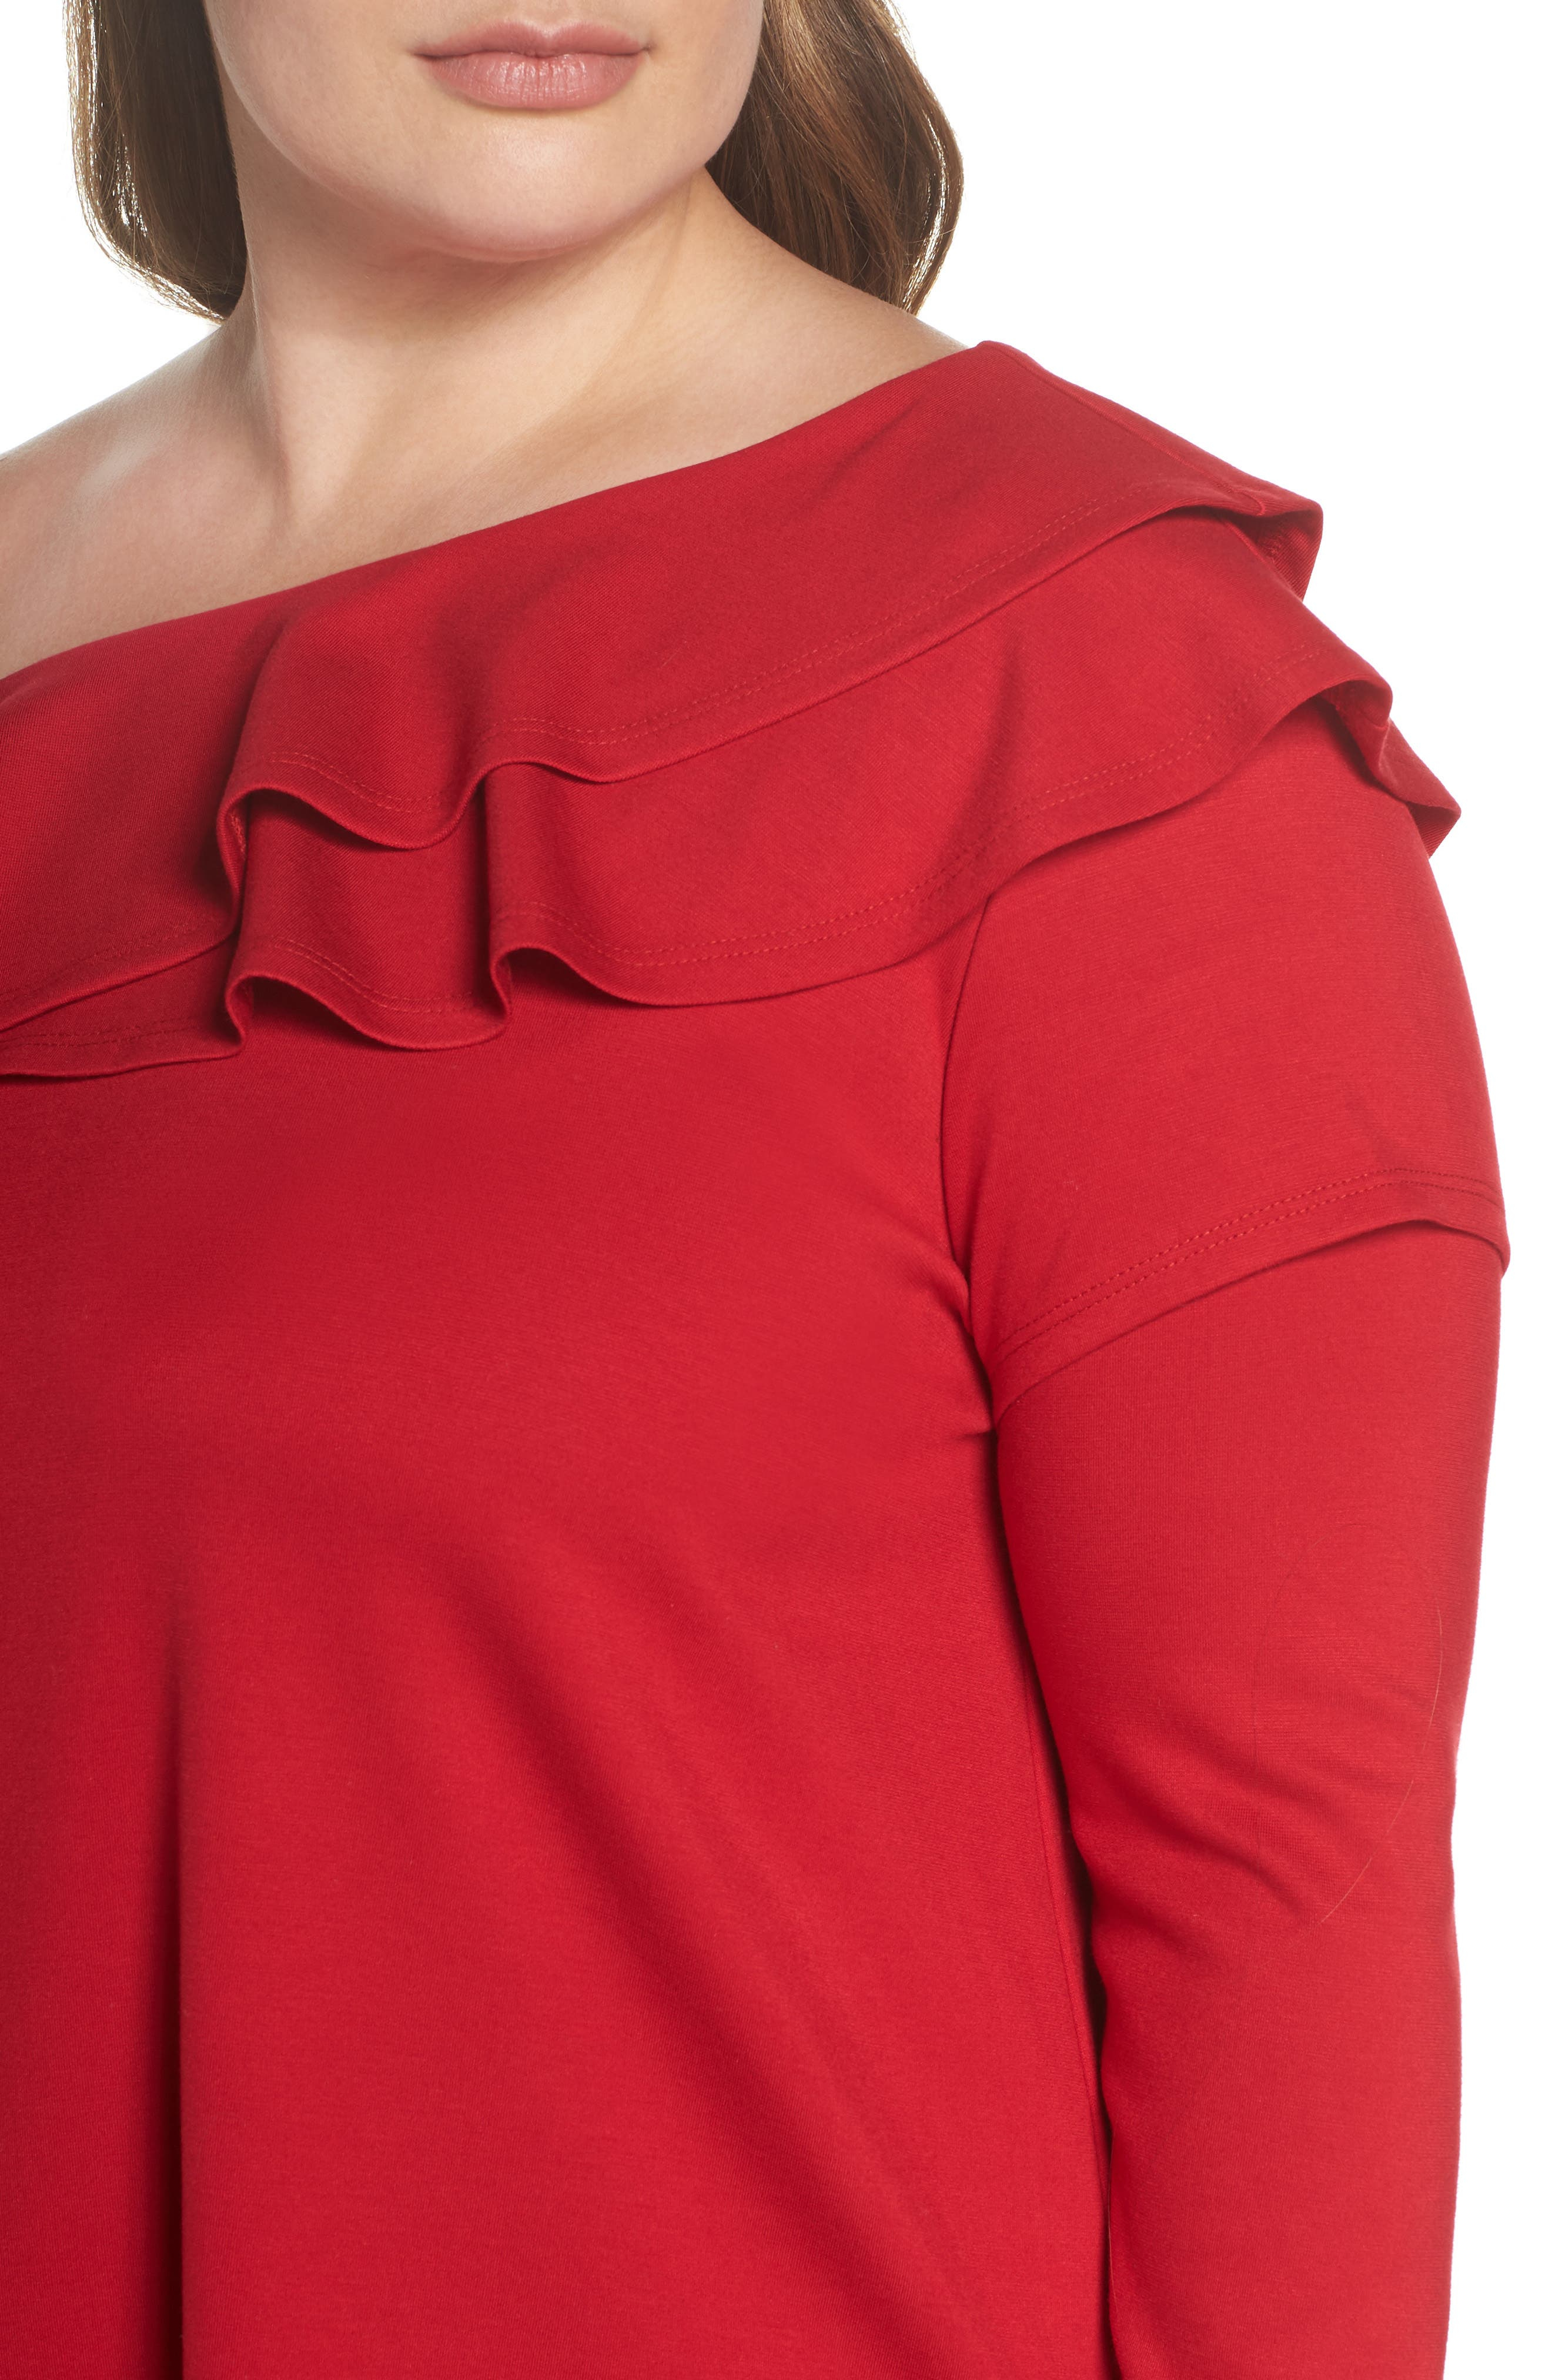 x Living in Yellow Elizabeth One-Shoulder Ruffle Top,                             Alternate thumbnail 16, color,